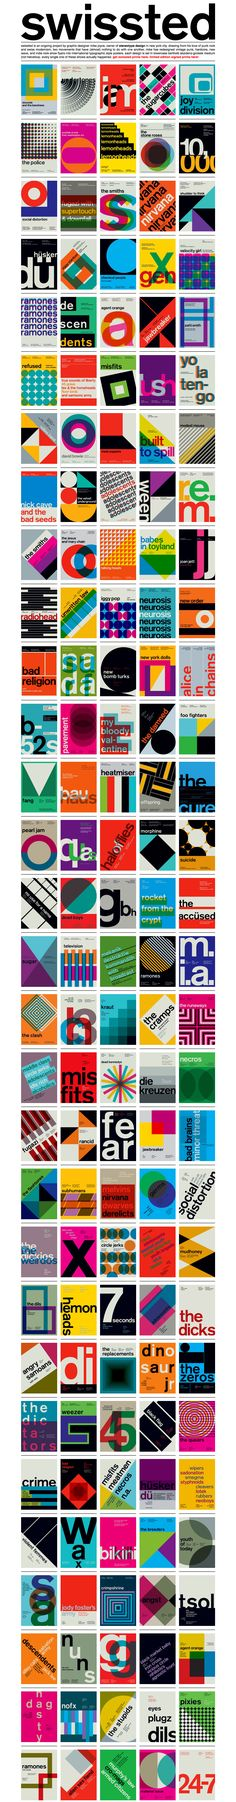 www.swissted.com posters look great all at once...